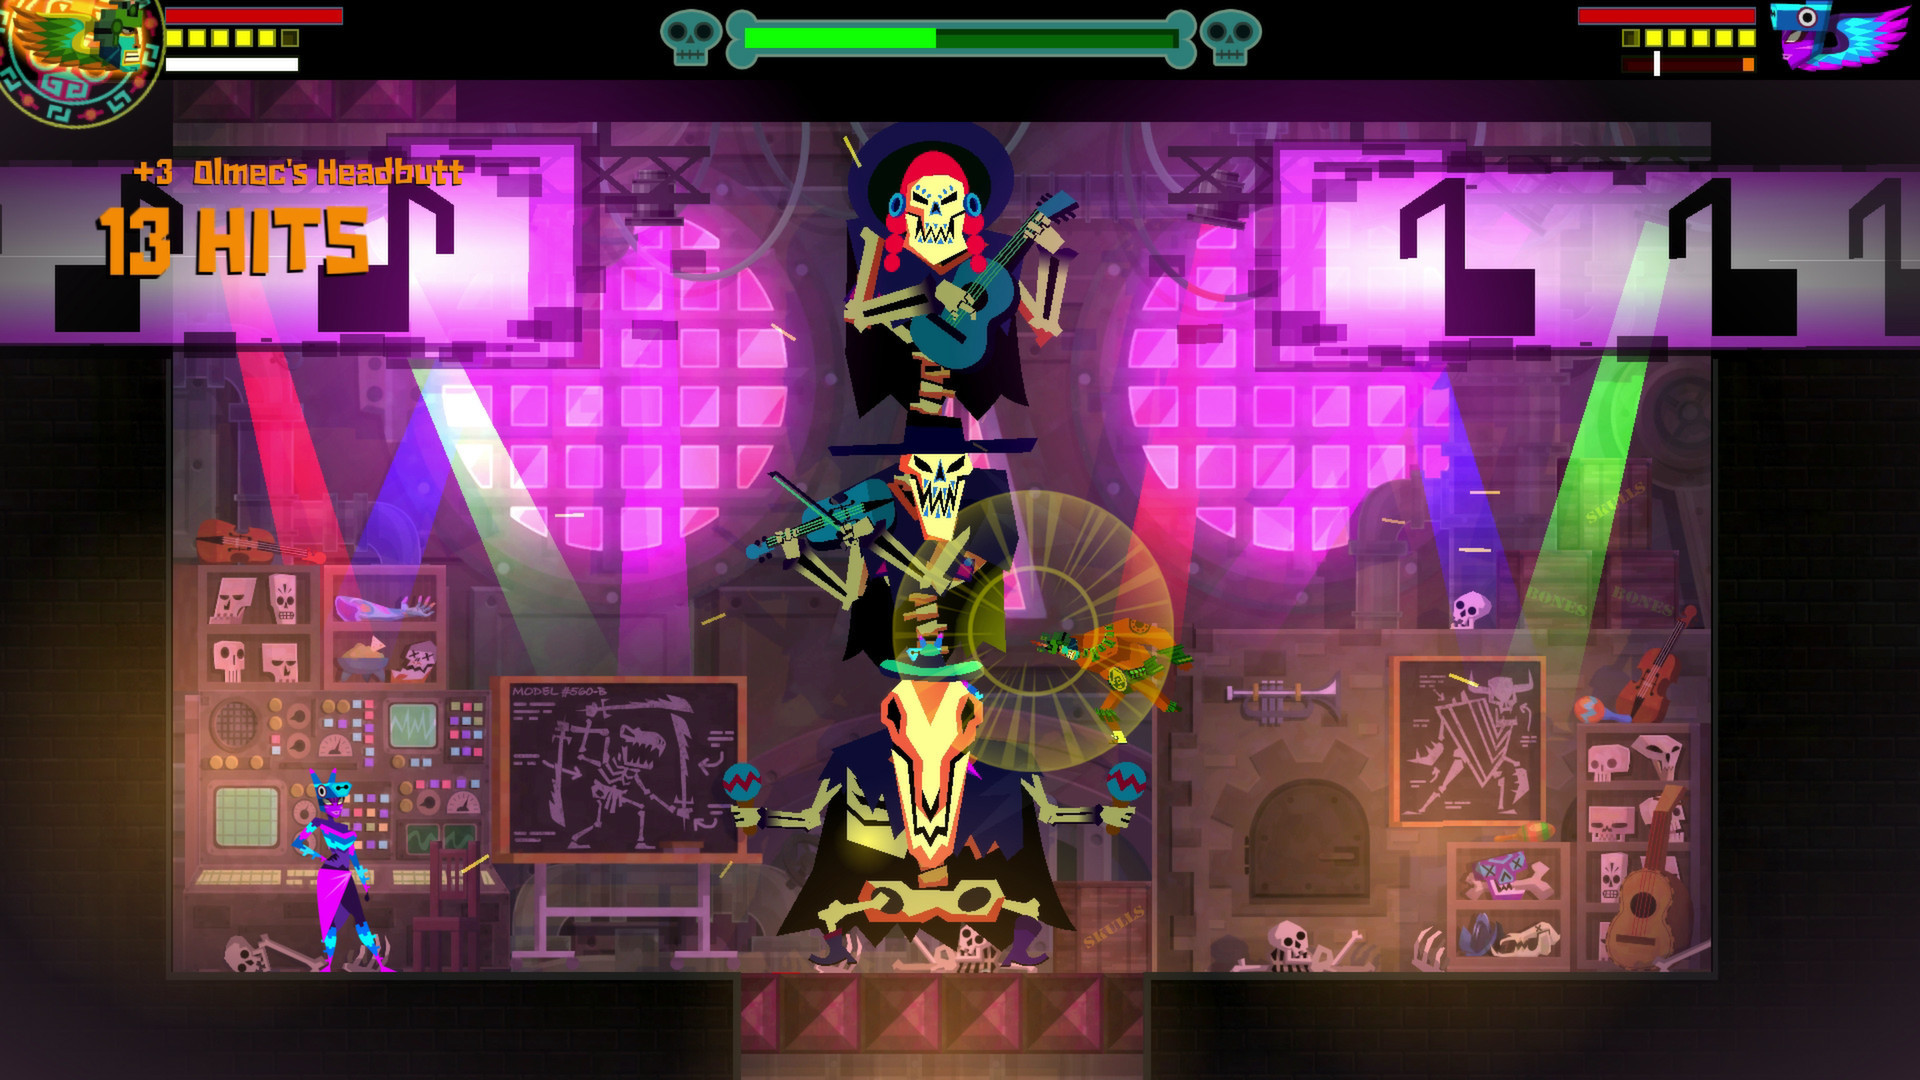 Скриншот *Guacamelee! Super Turbo Championship Edition [PS4] 5.05 / 6.72 / 7.02 [EUR] (2014) [Русский] (v1.03)*